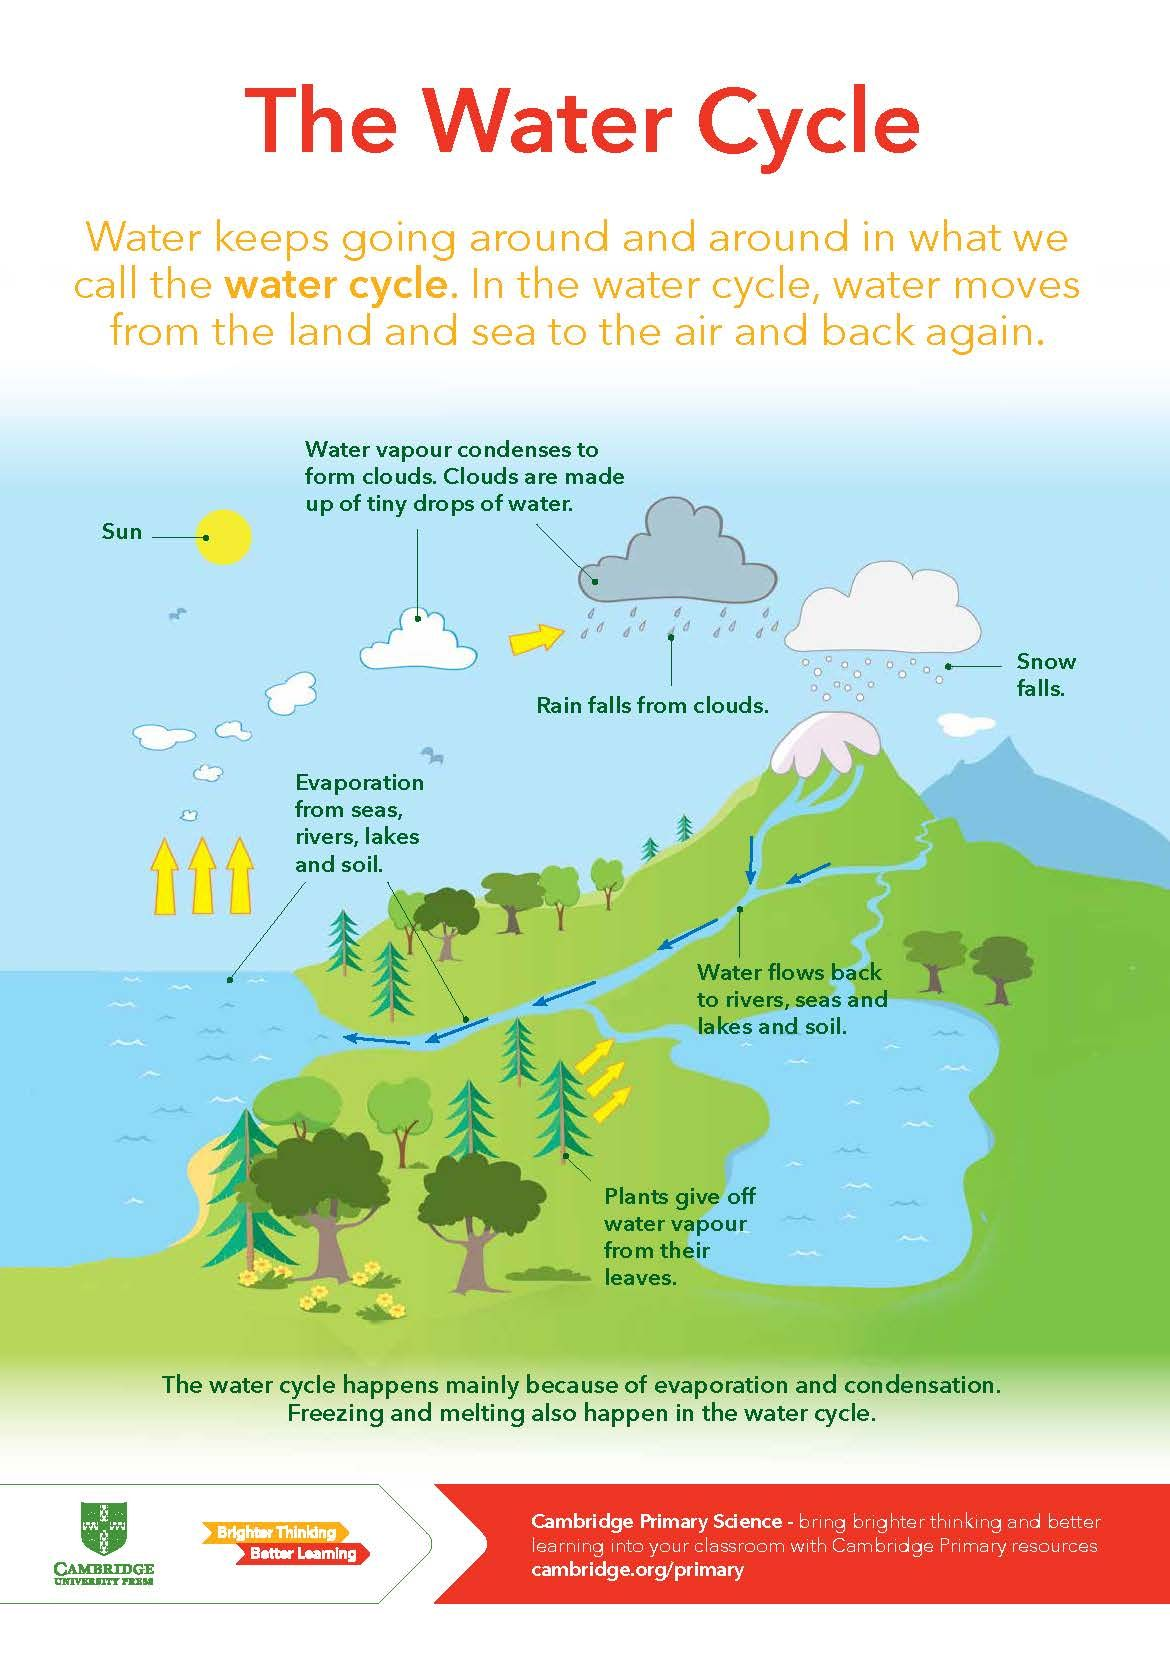 hight resolution of Cambridge Primary Science - The Water Cycle   Cambridge primary